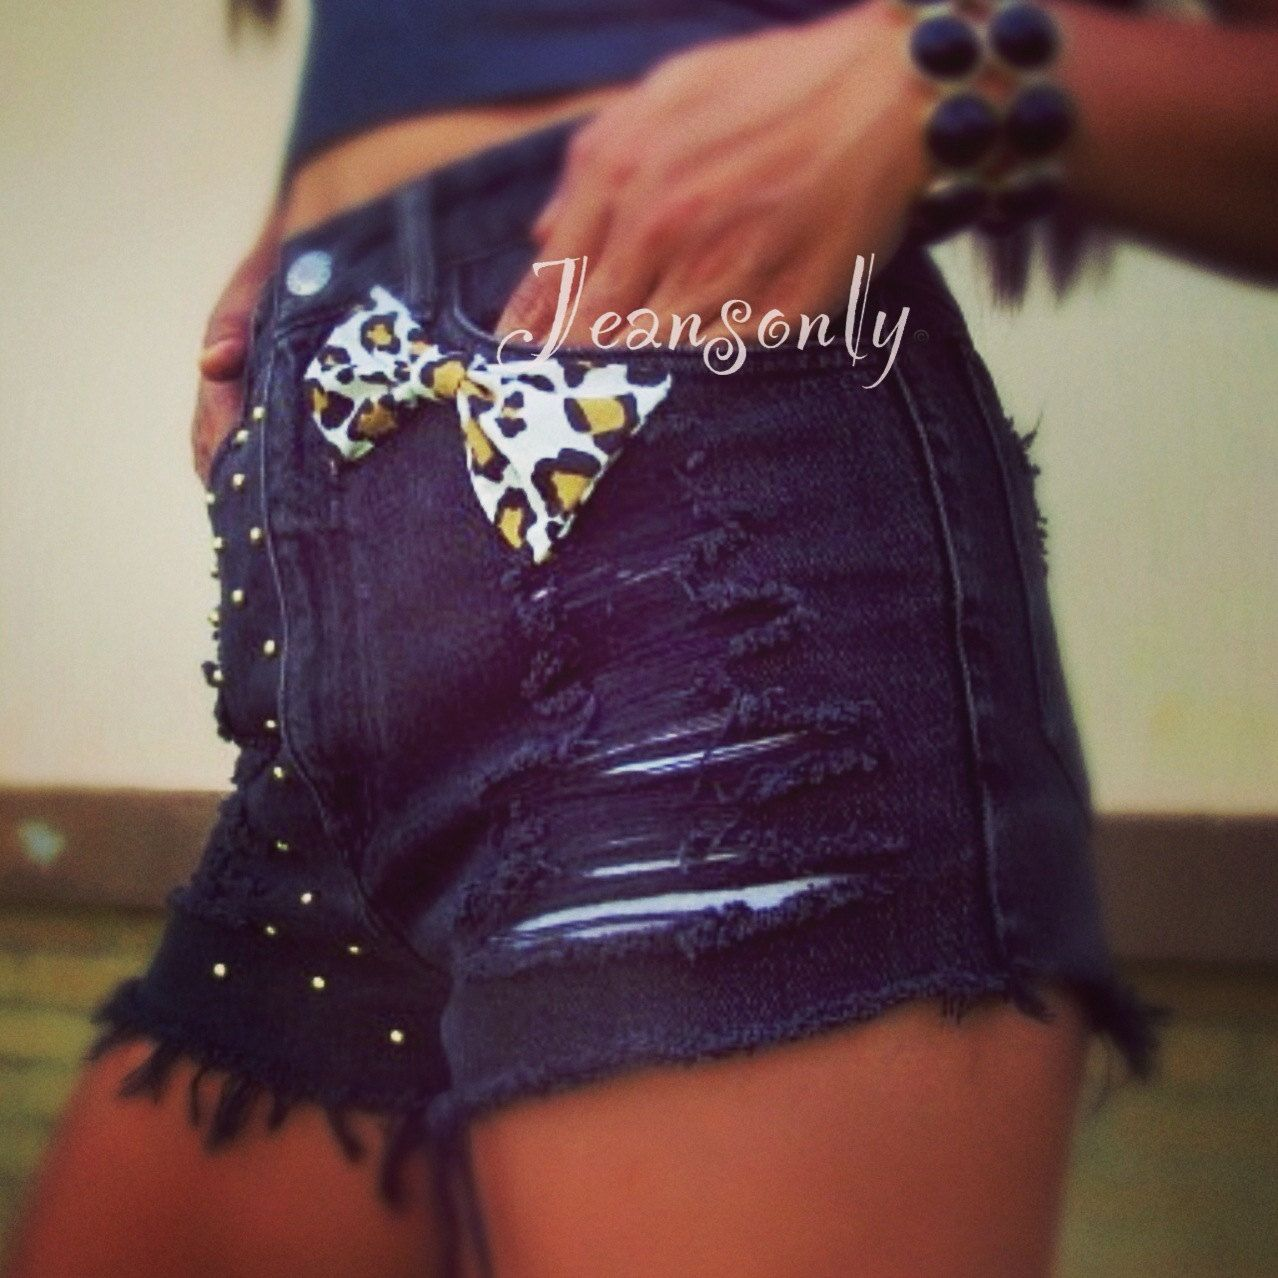 Leopard Bow and Studded Shorts ...  -luv the bow (;